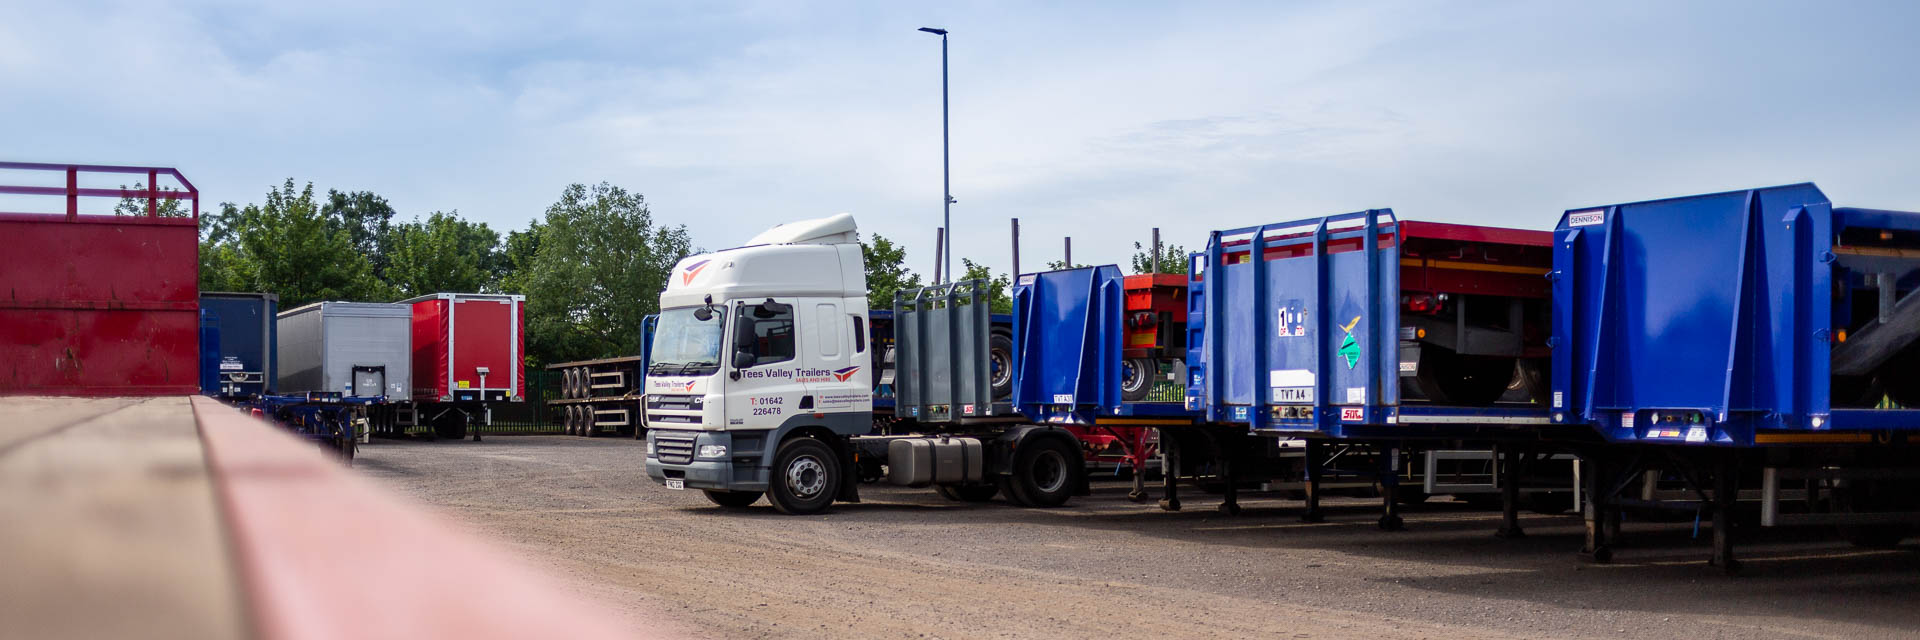 Photo of various types of fully serviced commercial trailers for sale by Tees Valley Trailers. Skeletal, Curtain Sider and Flat trailers are all shown.